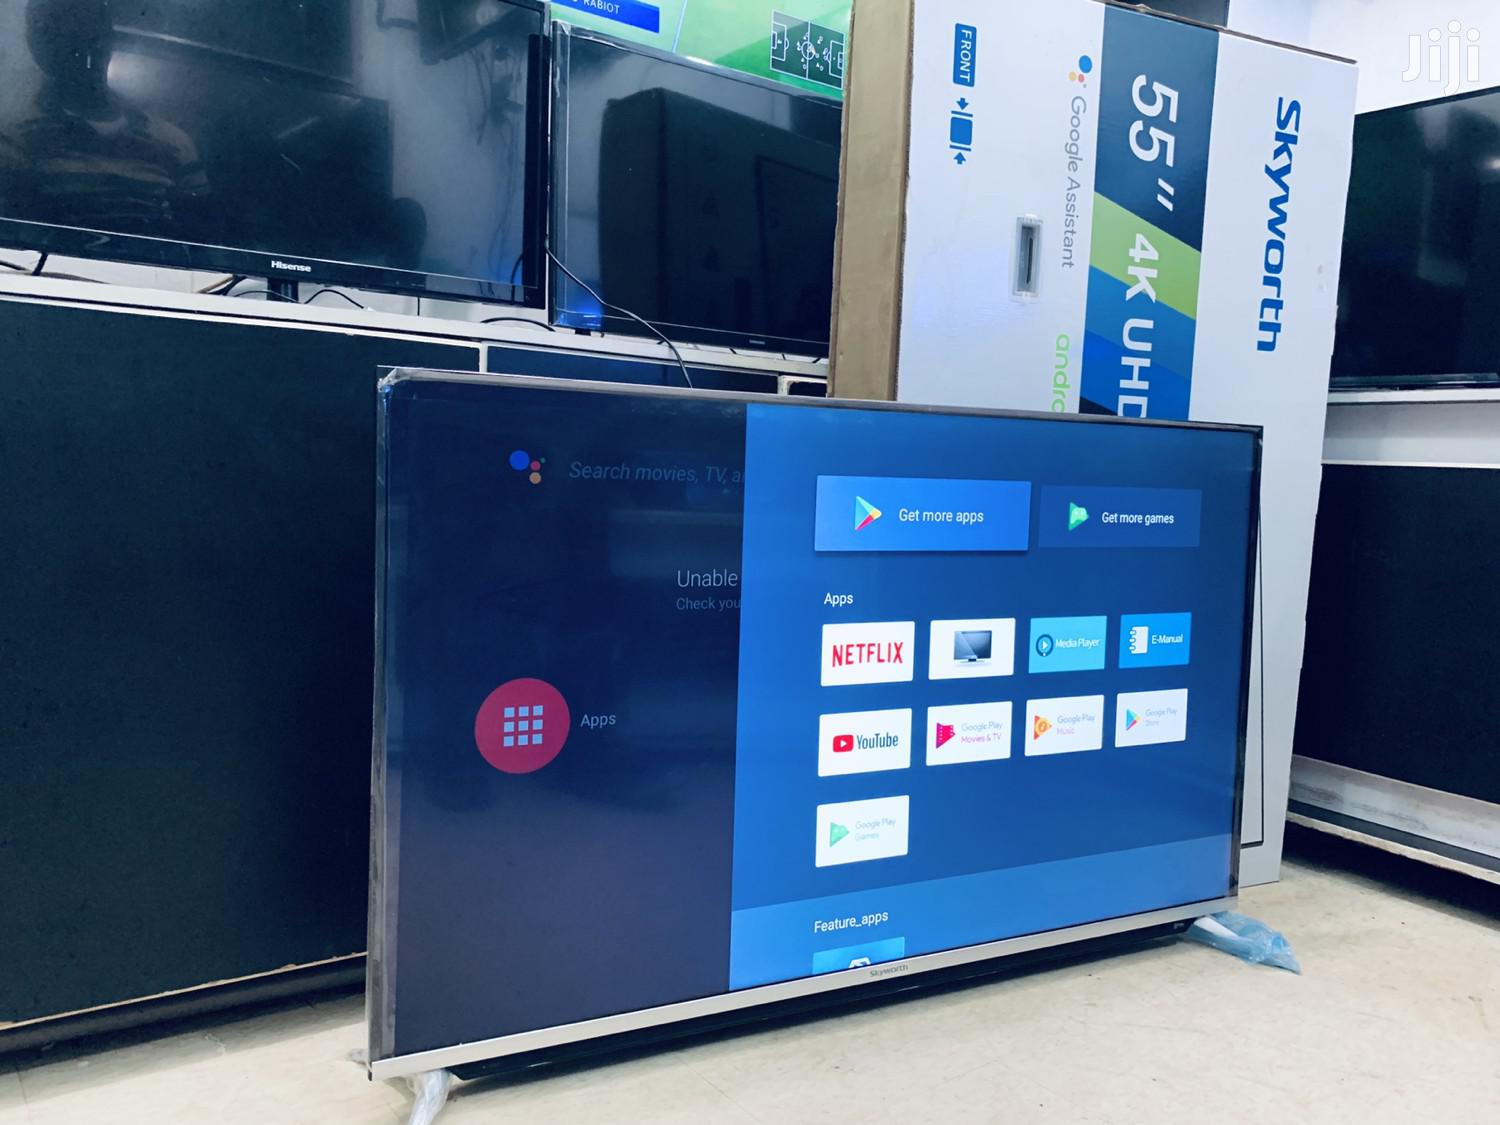 Archive: LED UHD 4K Skyworth Flat Screen 55 Inches